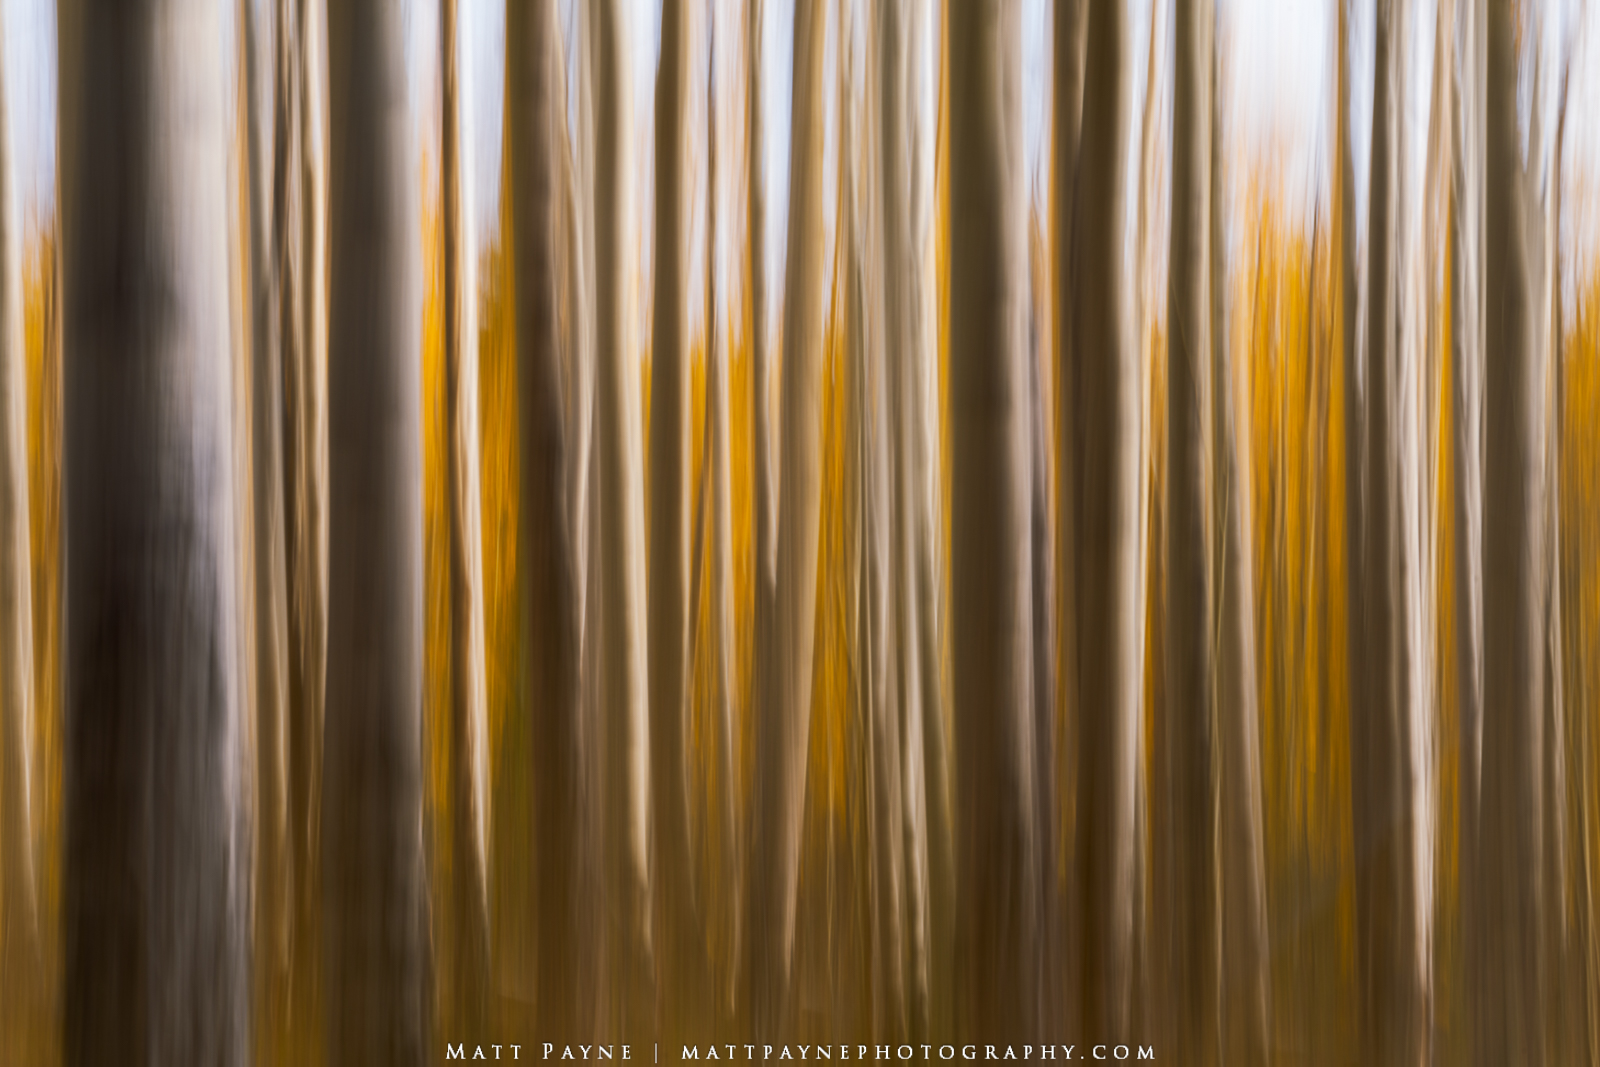 Intentional Camera Movement is not something I have dabbled with much over the years but after trying it out this year I think...